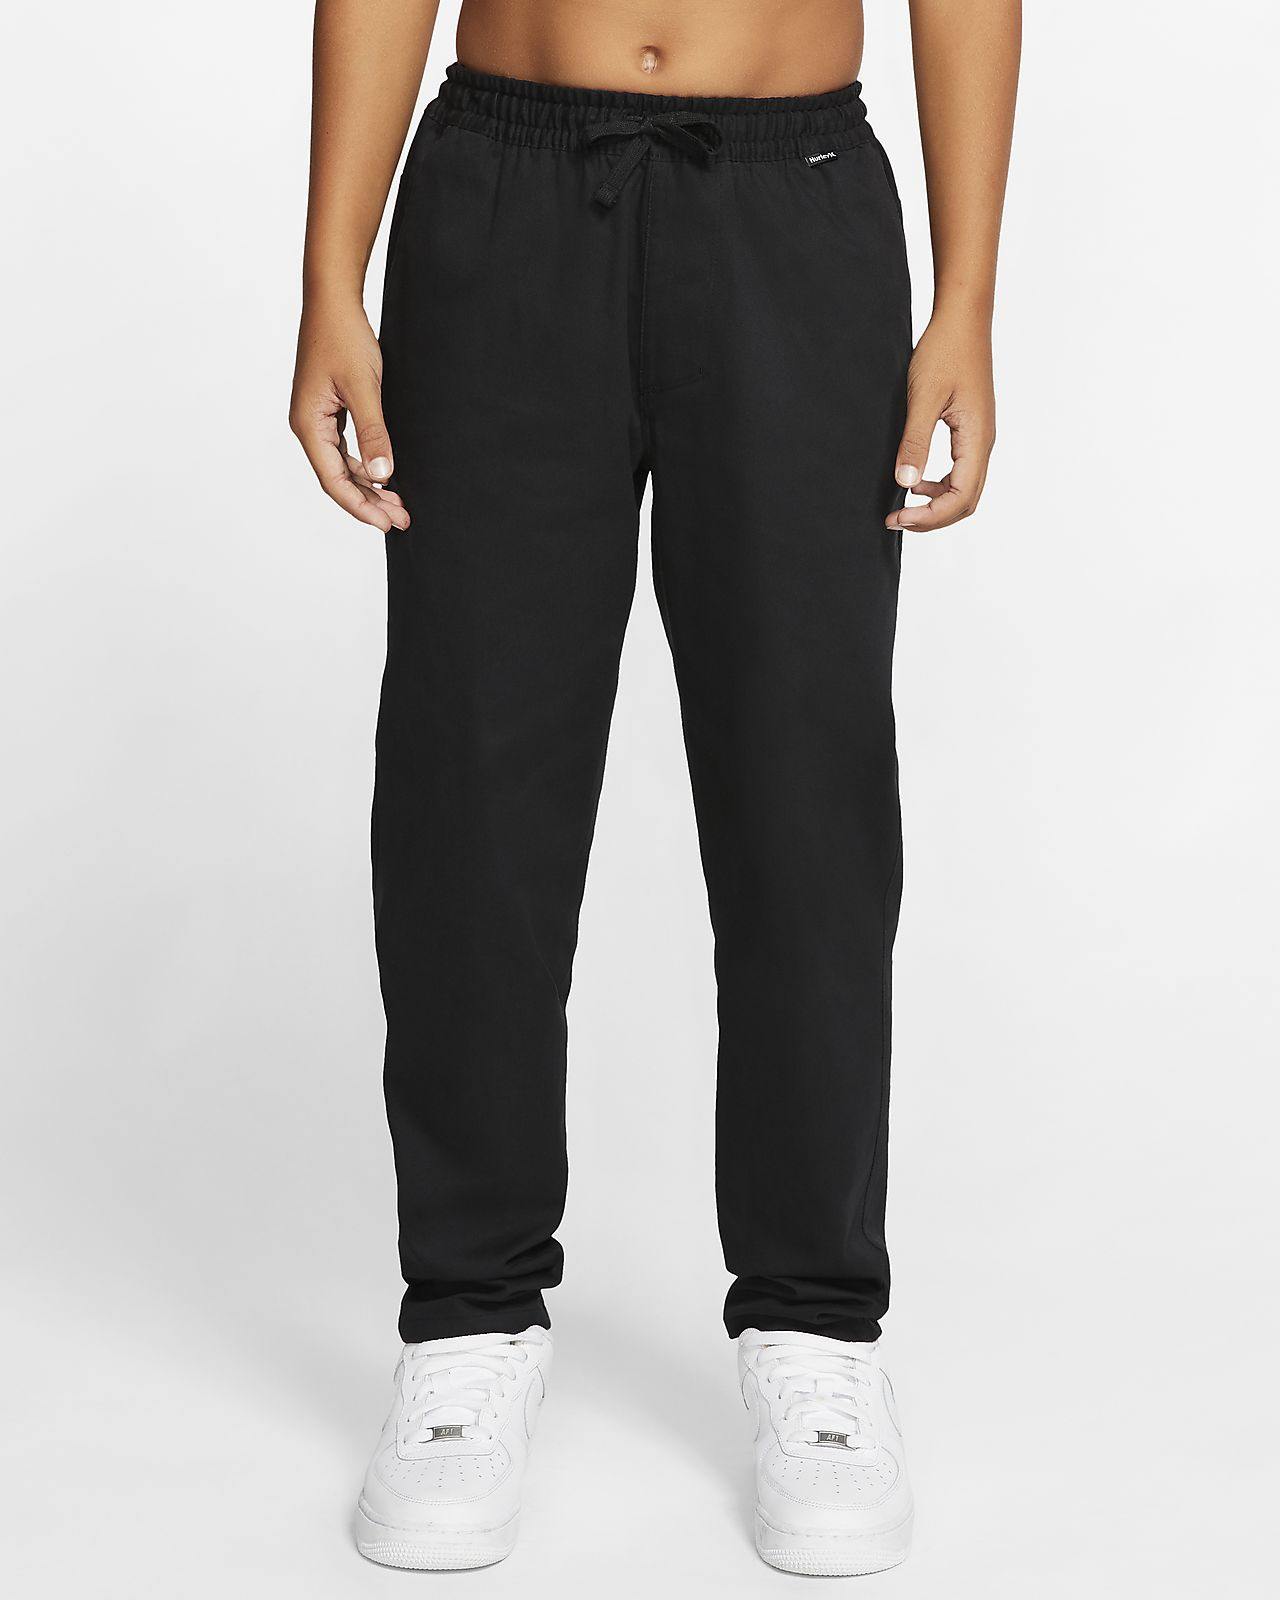 Hurley One And Only Stretch Boys' Chino Pants